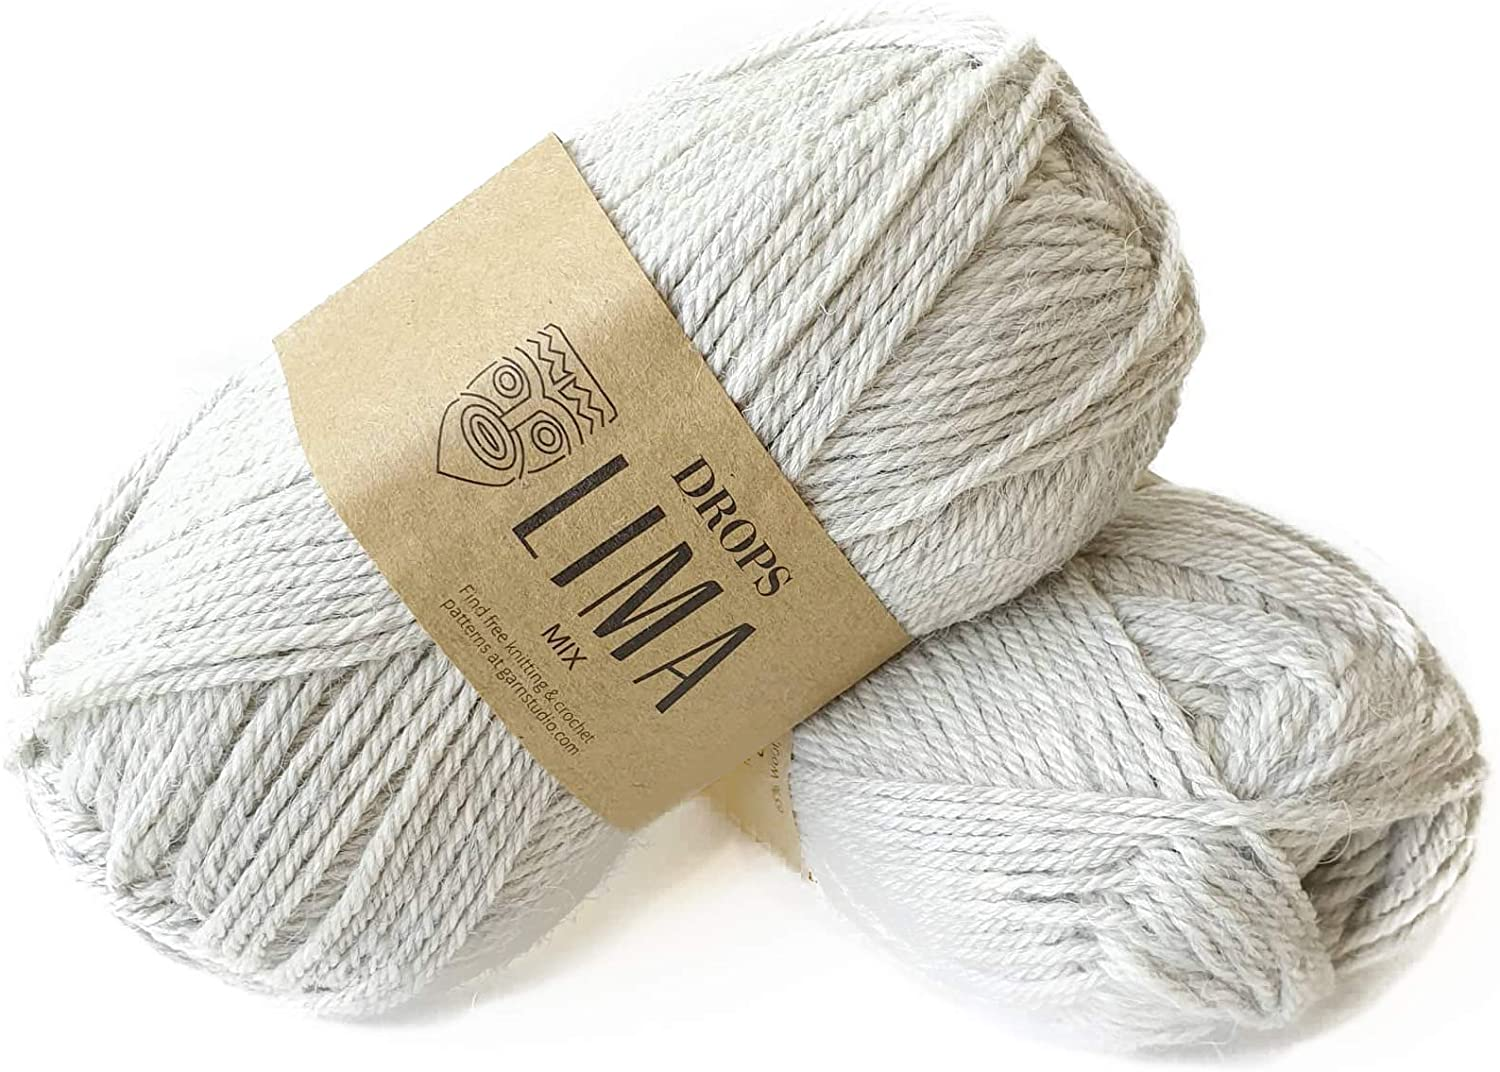 65% Wool and 35% Alpaca Yarn for Knitting and Crocheting, 3 or Light, Worsted, DK Weight, Drops Lima, 1.8 oz 109 Yards per Ball (9020 Pearl Grey)